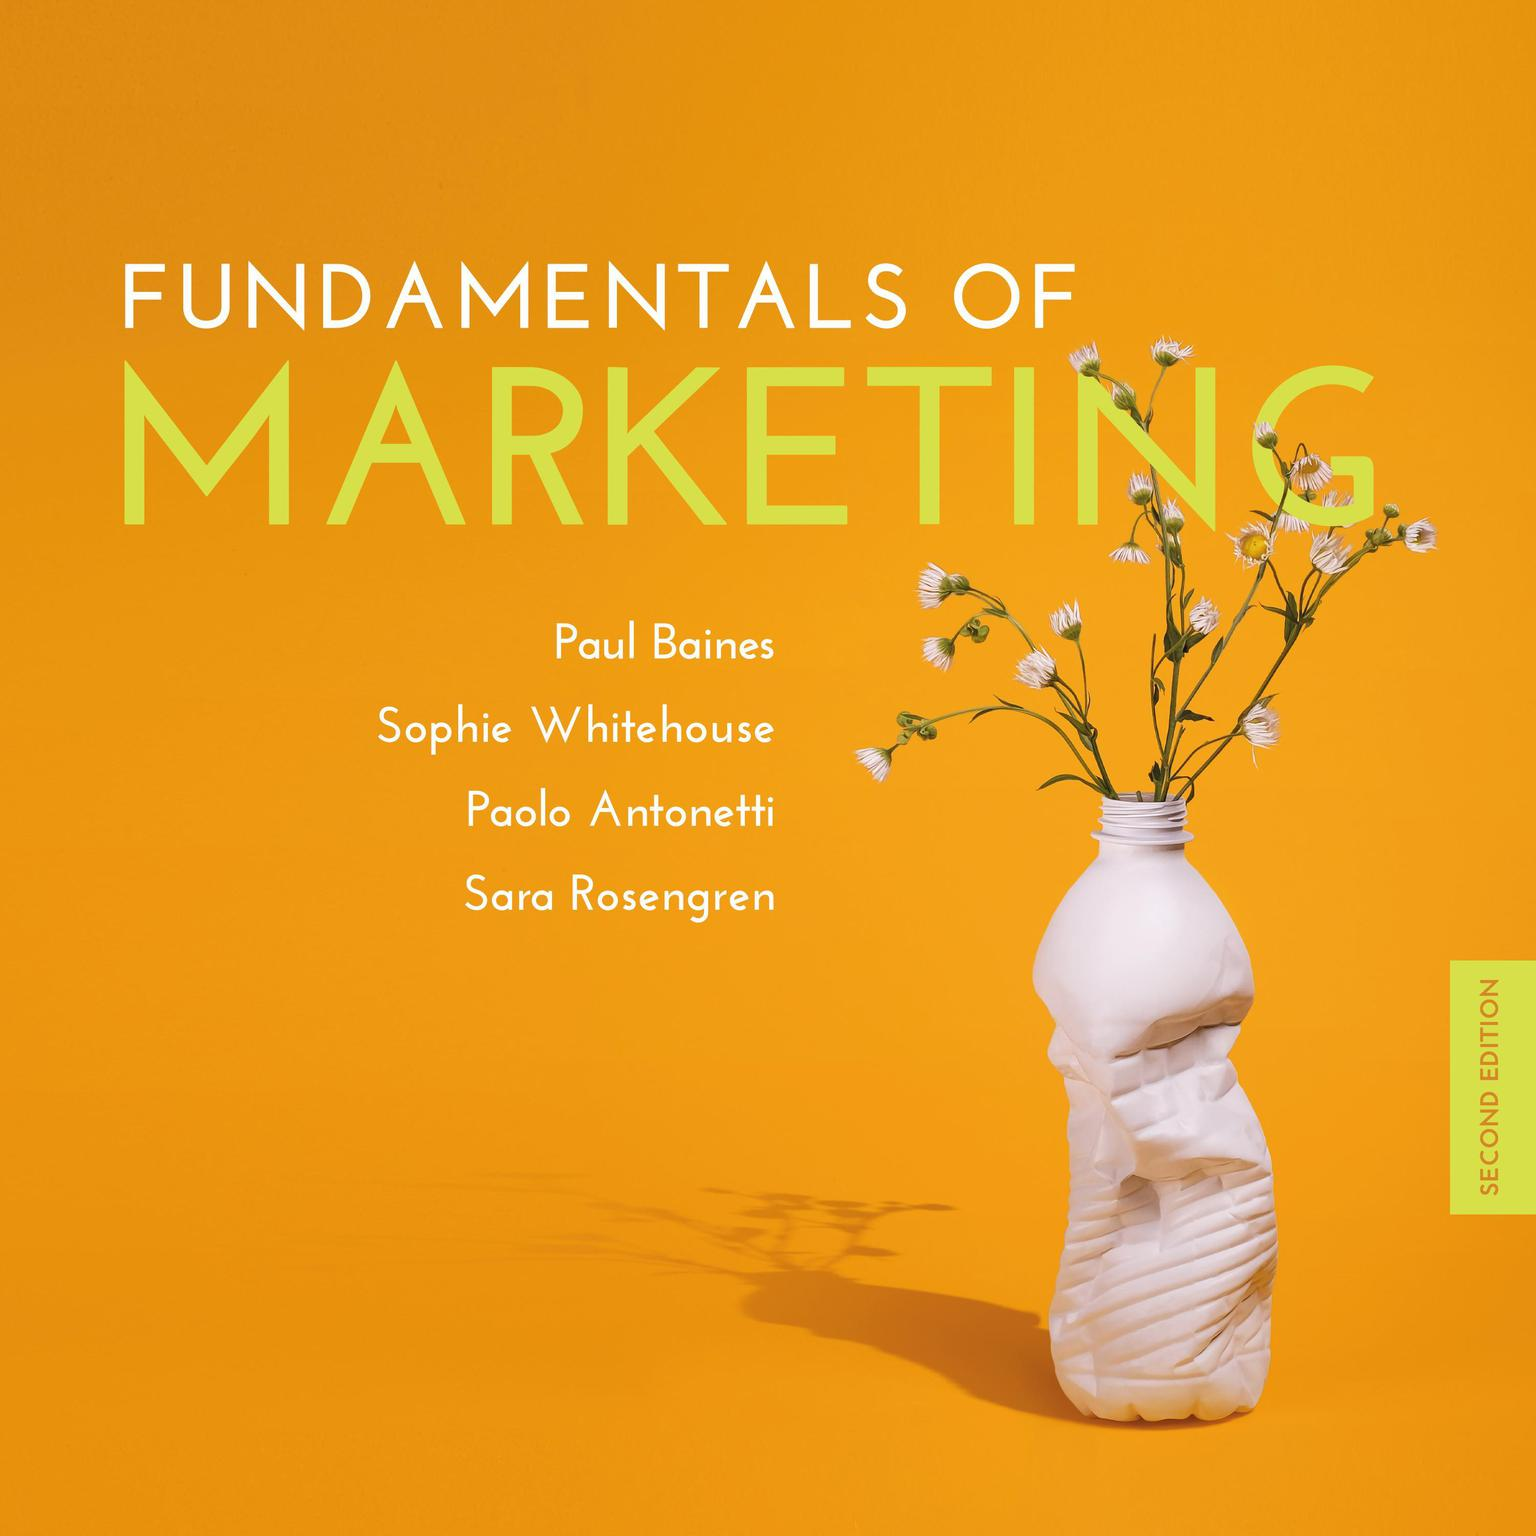 Fundamentals of Marketing, 2nd Edition Audiobook, by Paul Baines